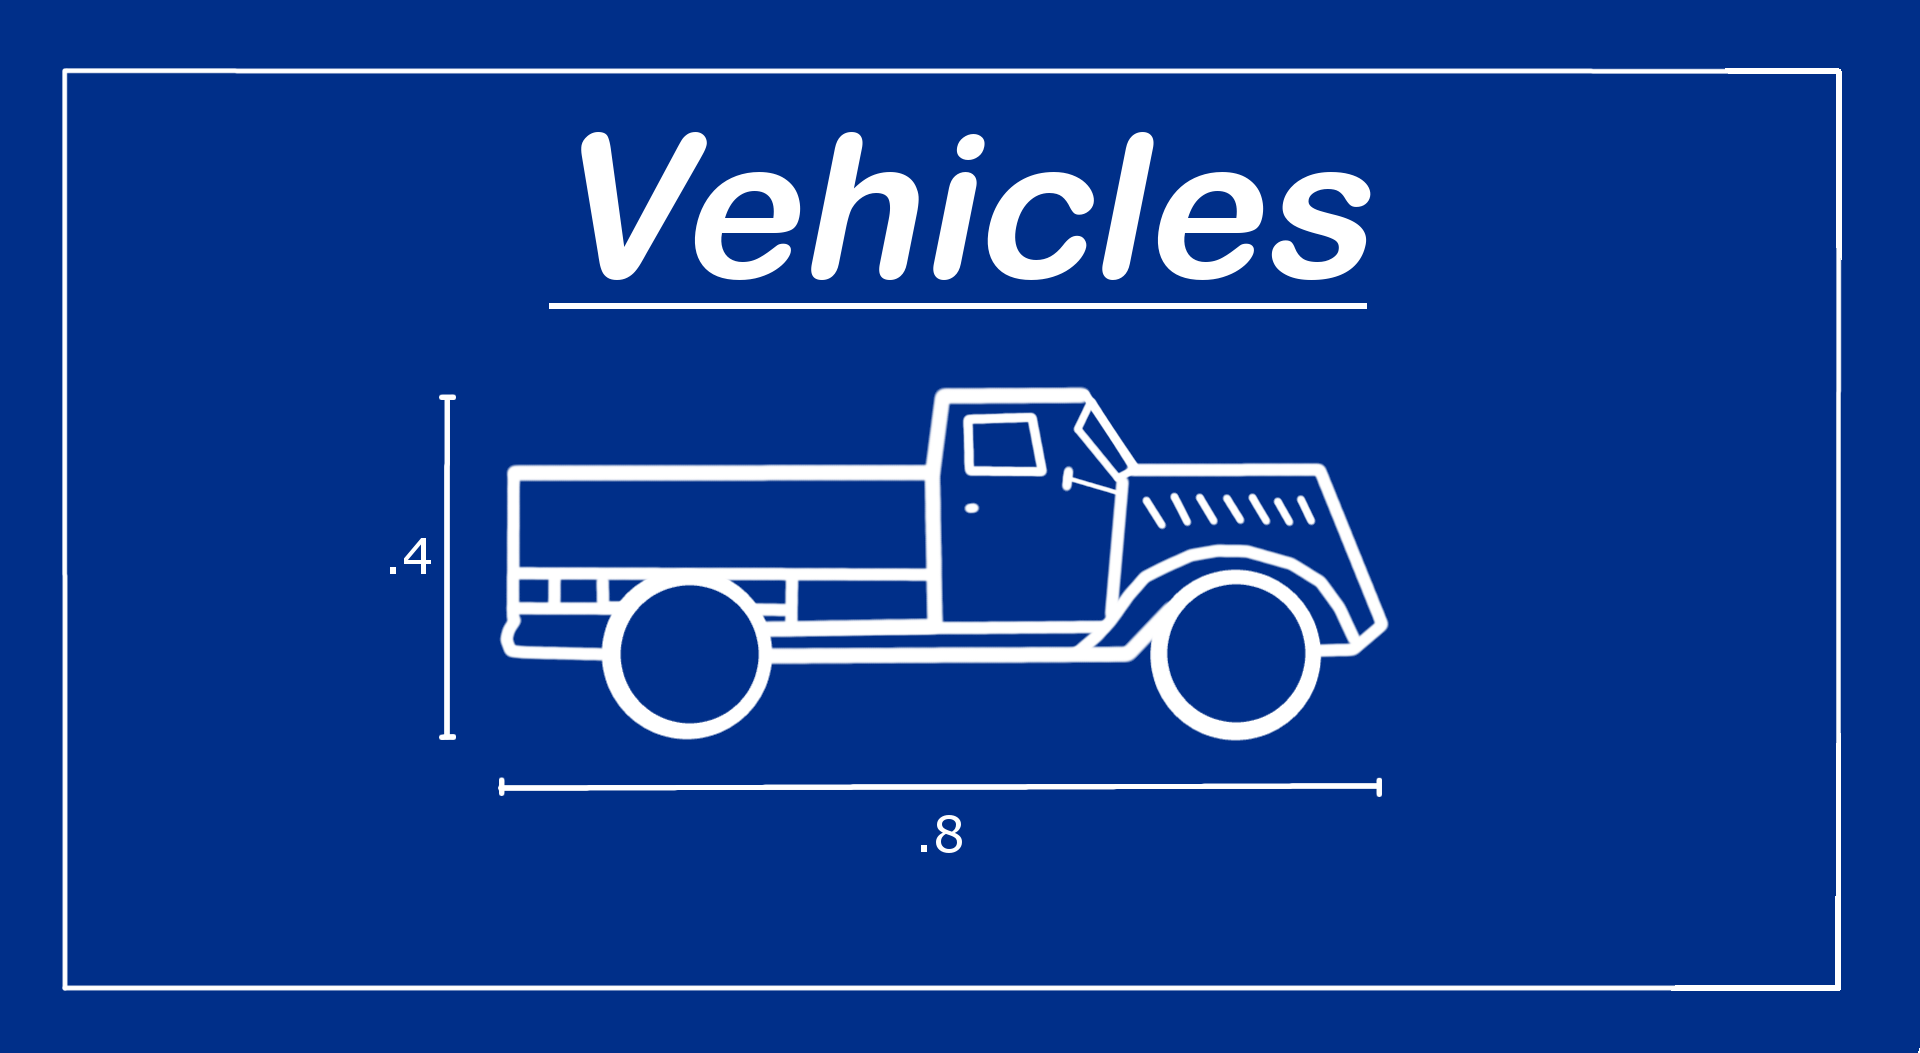 Yes, Vehicles